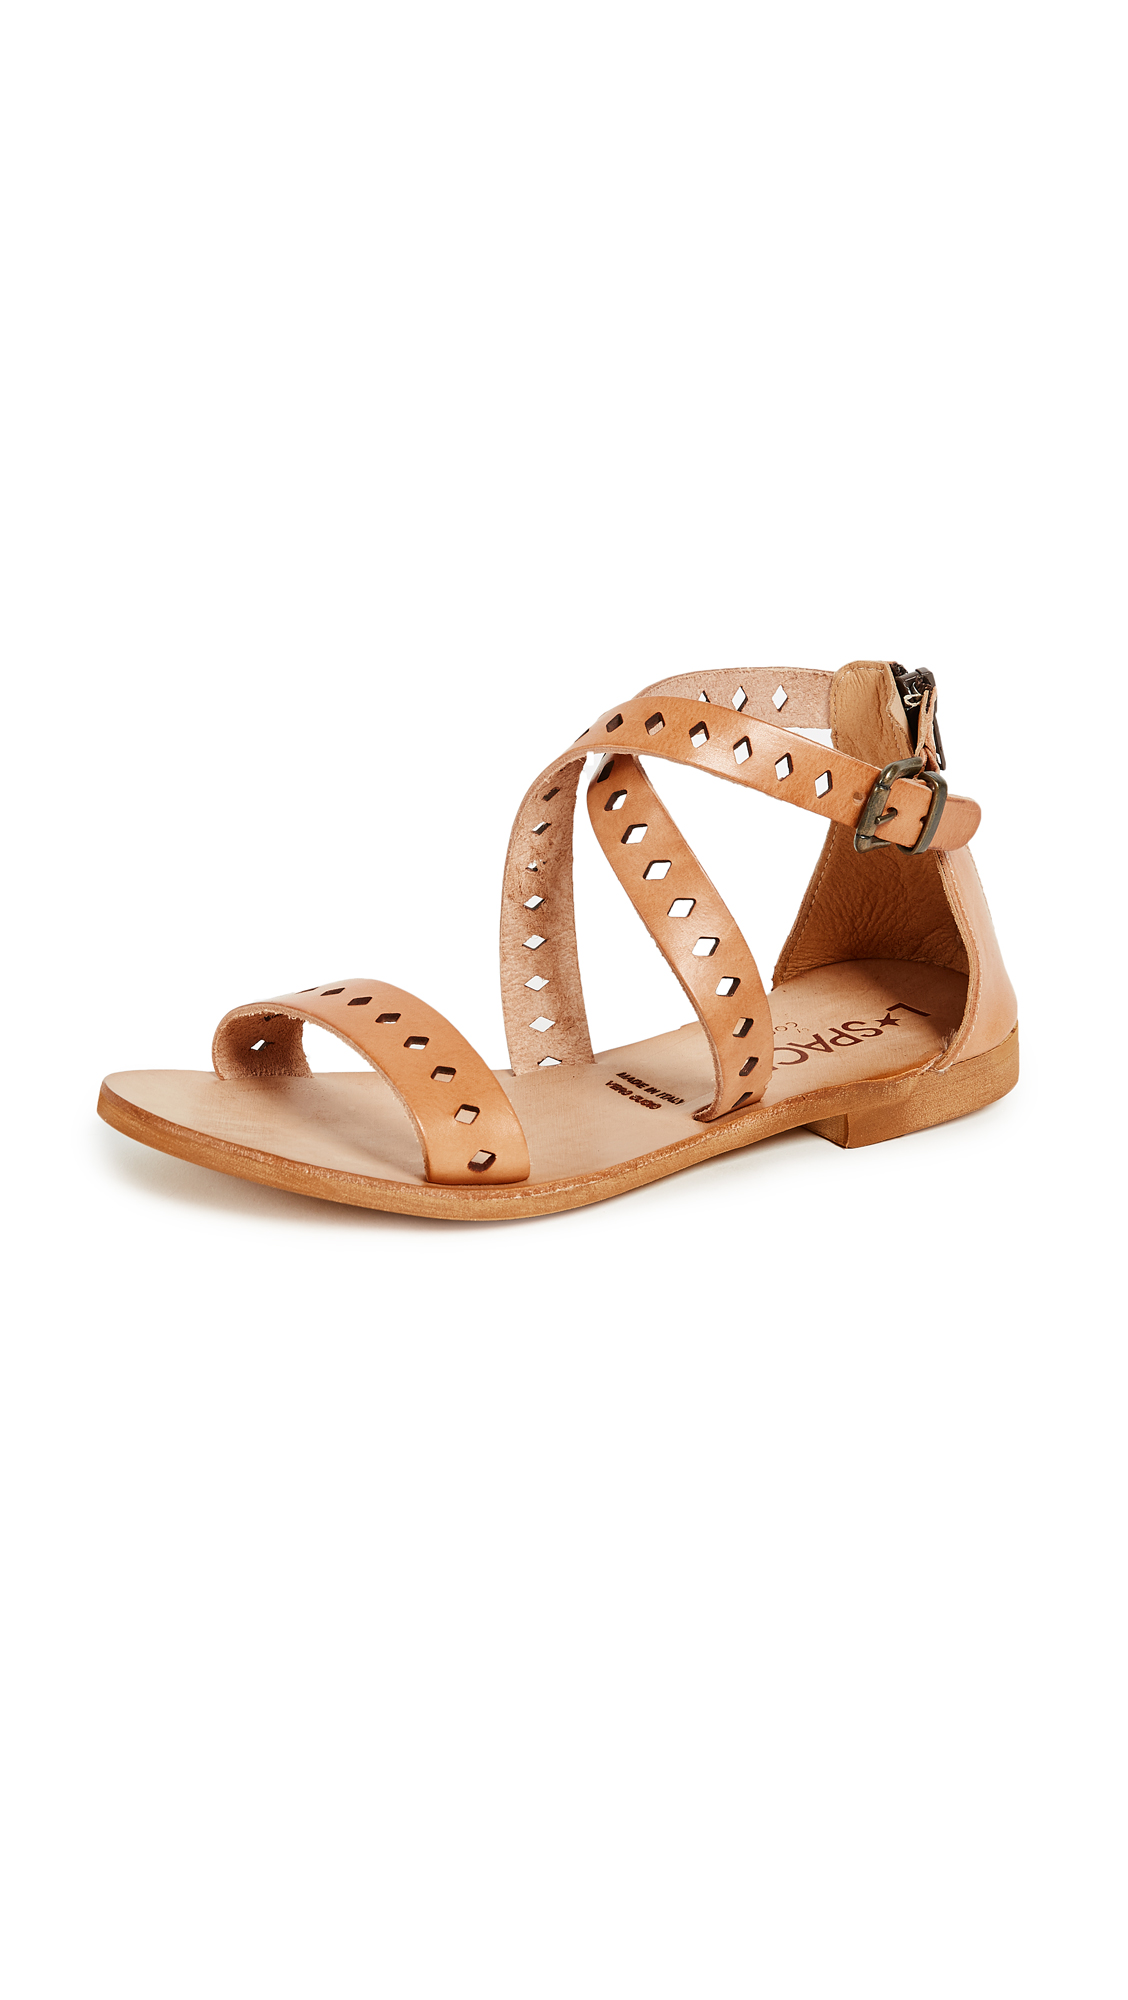 Cocobelle x L*Space Cavilla Sandals - Natural